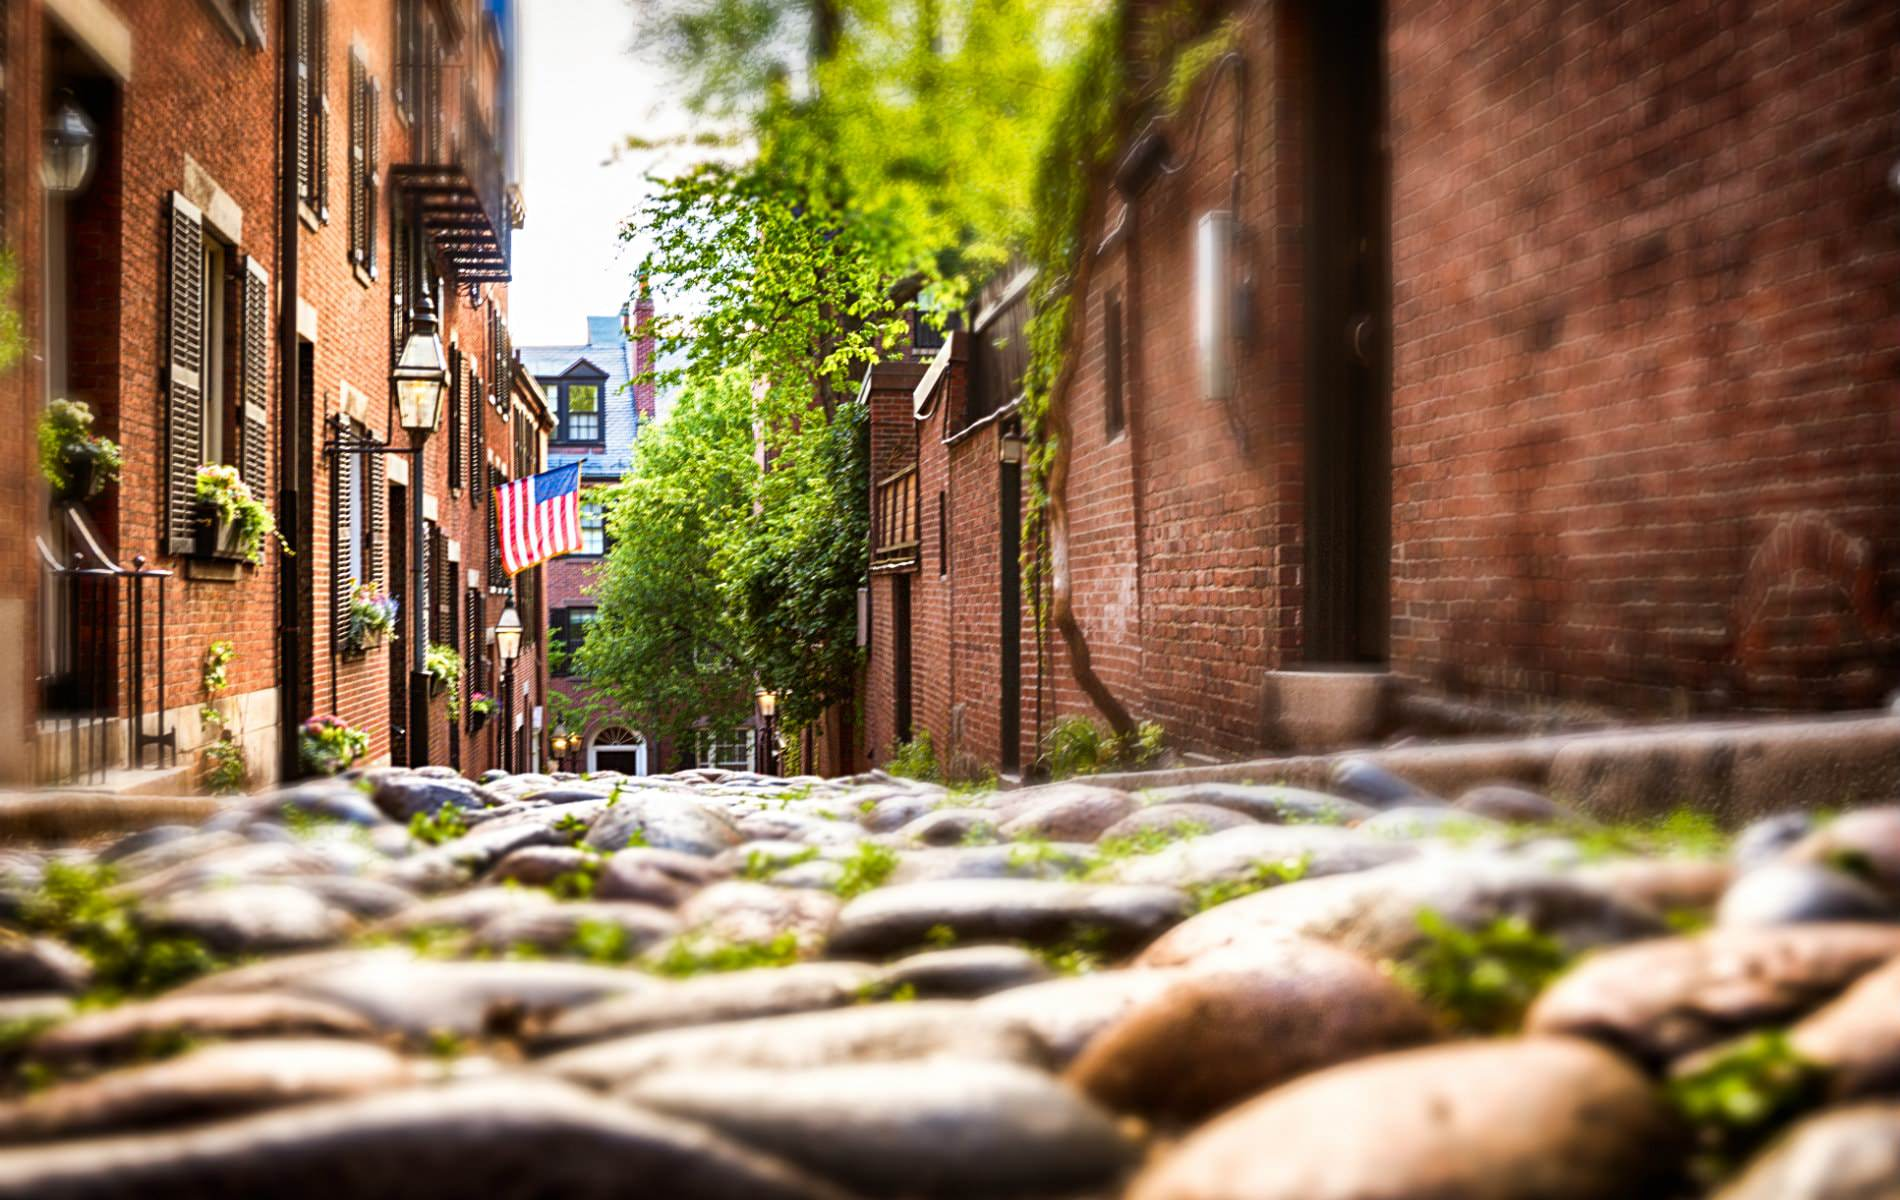 Ground level view of sloping stone alleyway between red brick buildings